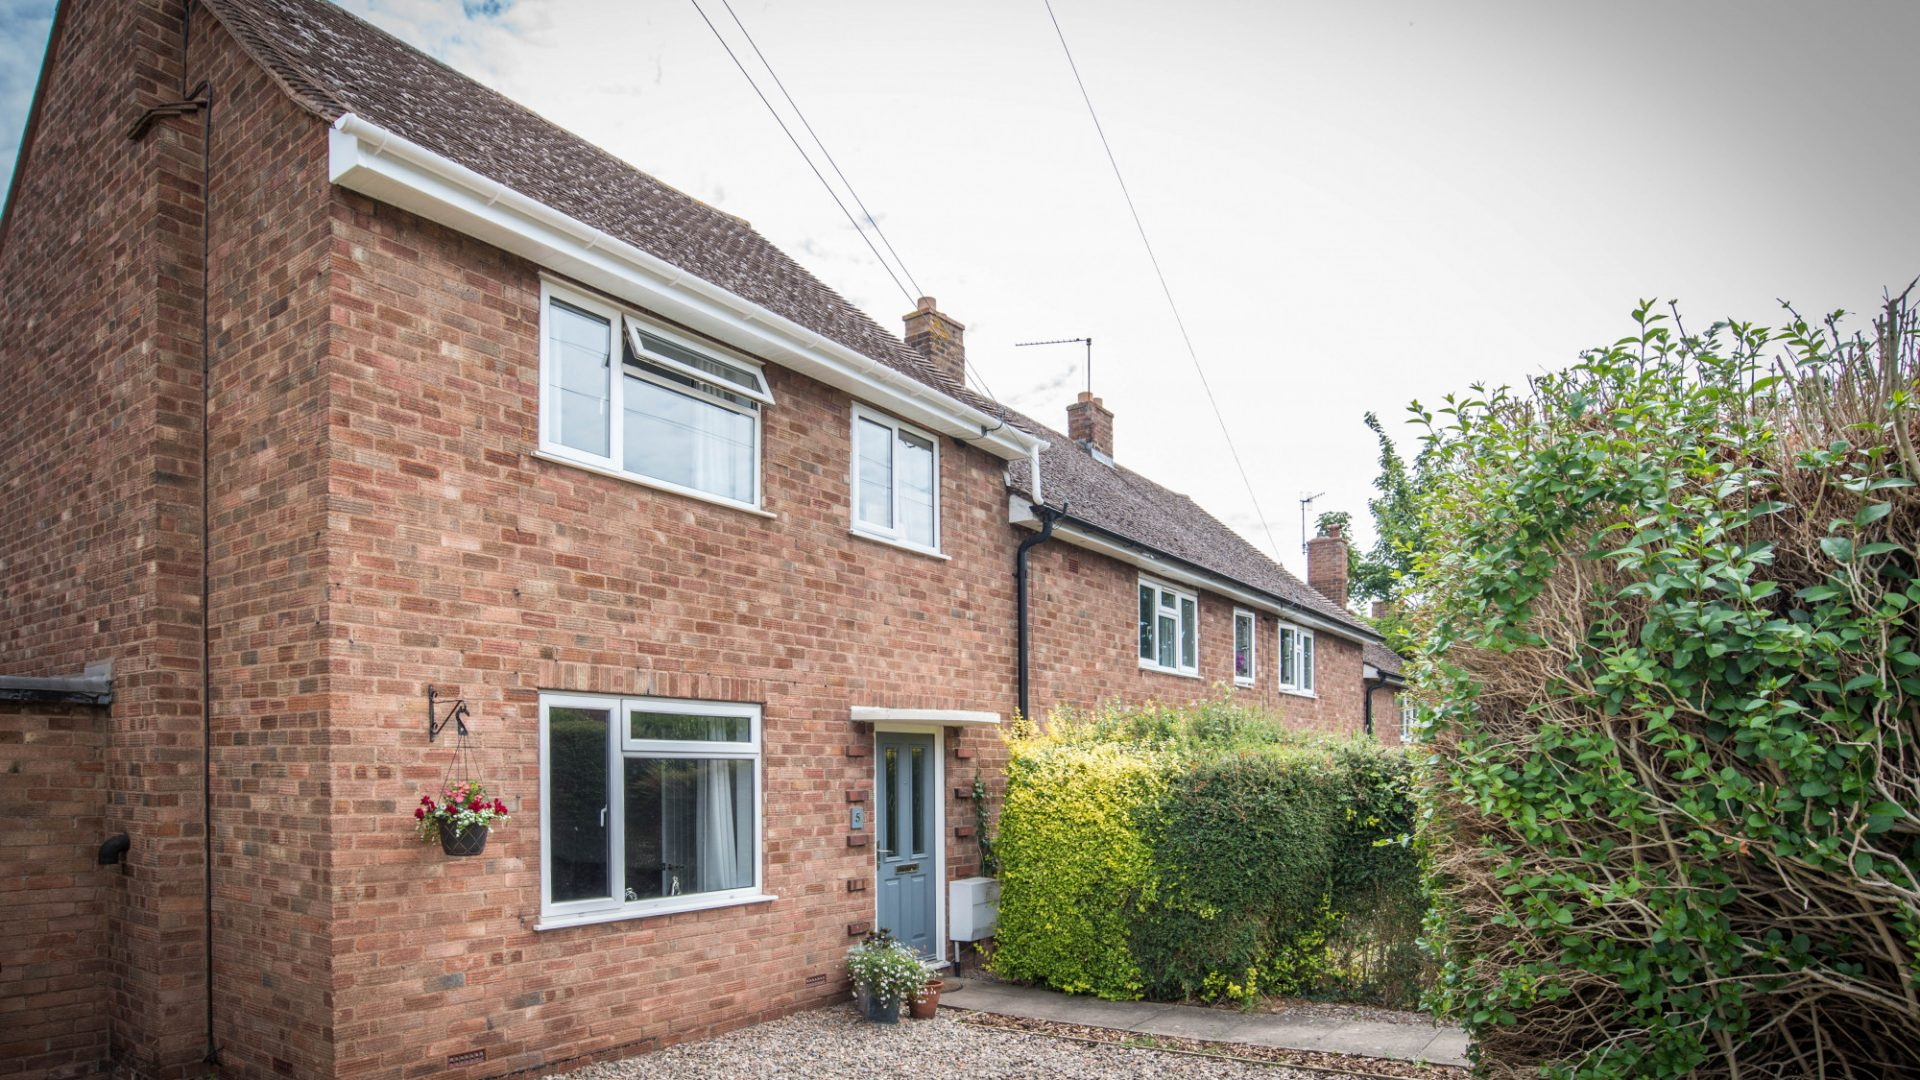 Cotswold Road, Malvern for sale with Mr and Mrs Clarke estate agent